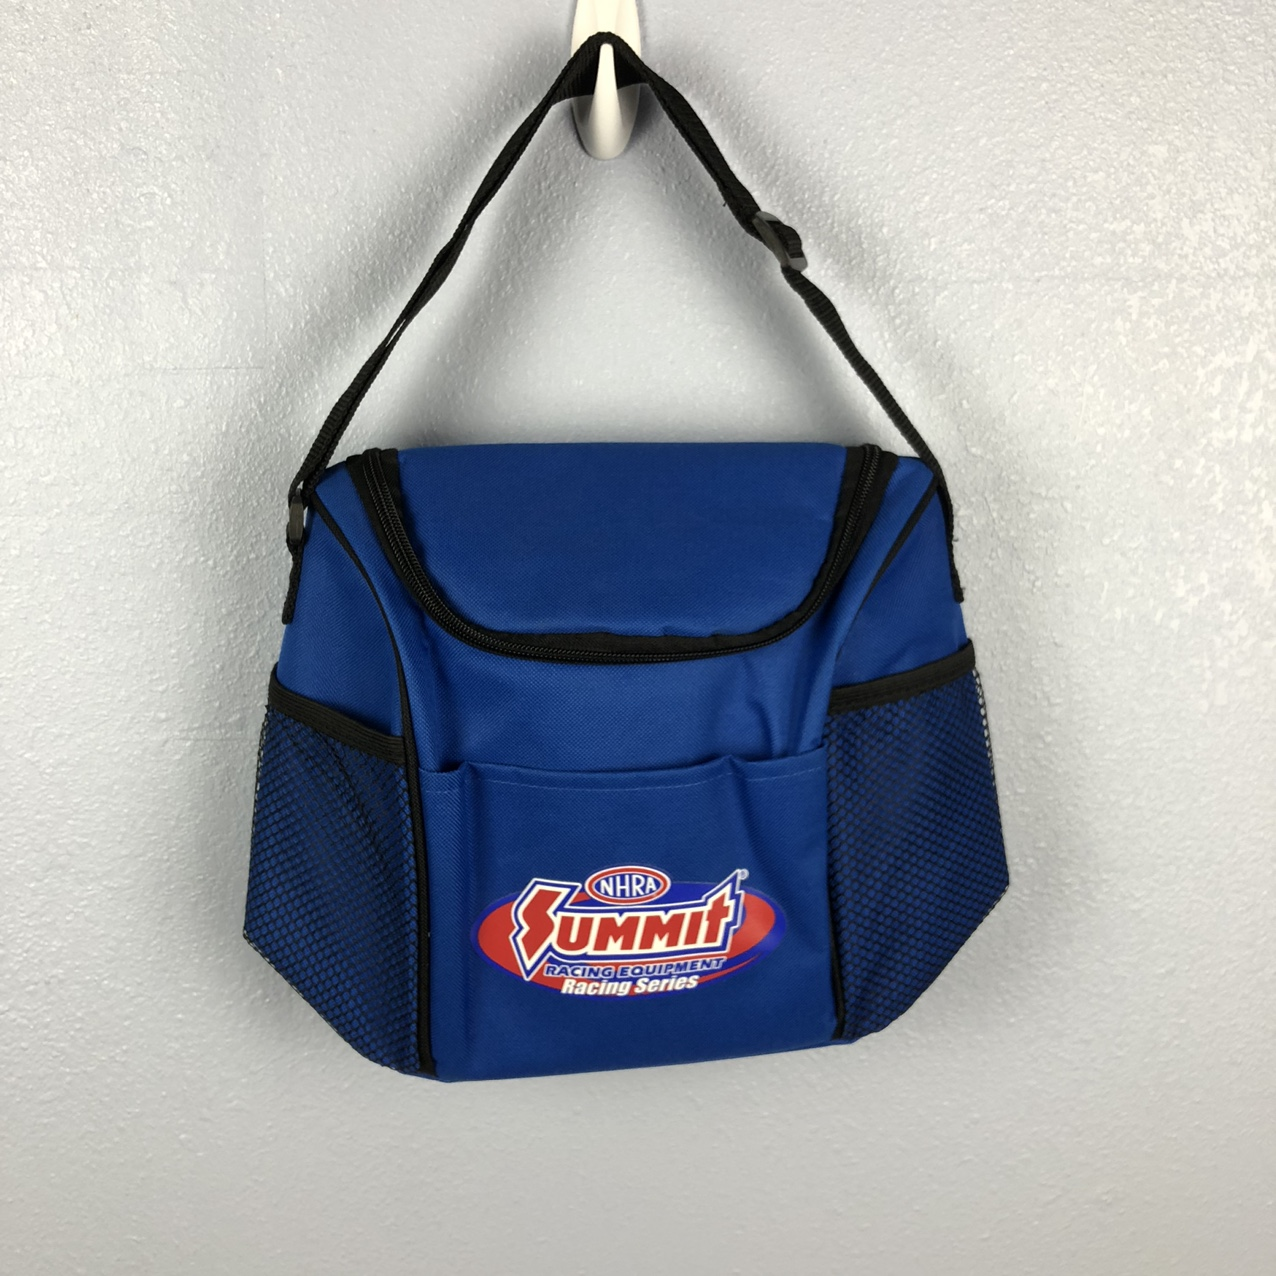 Product Image 1 - NHRA Summit racing equipment lunch